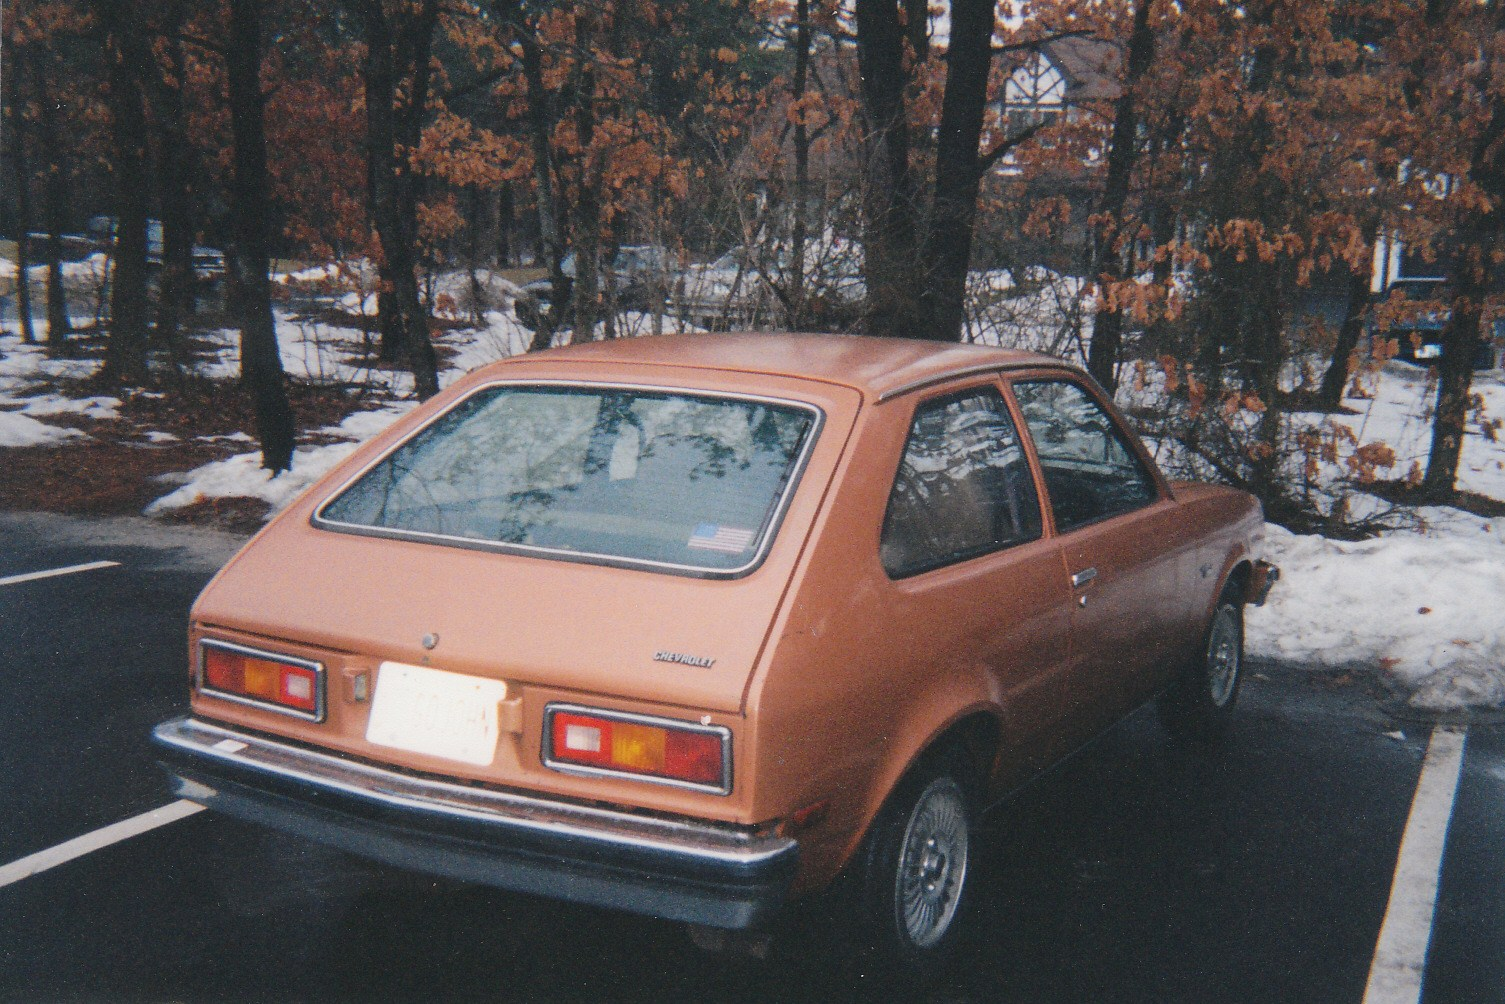 Enchanting Old Chevy Hatchback Composition - Classic Cars Ideas ...